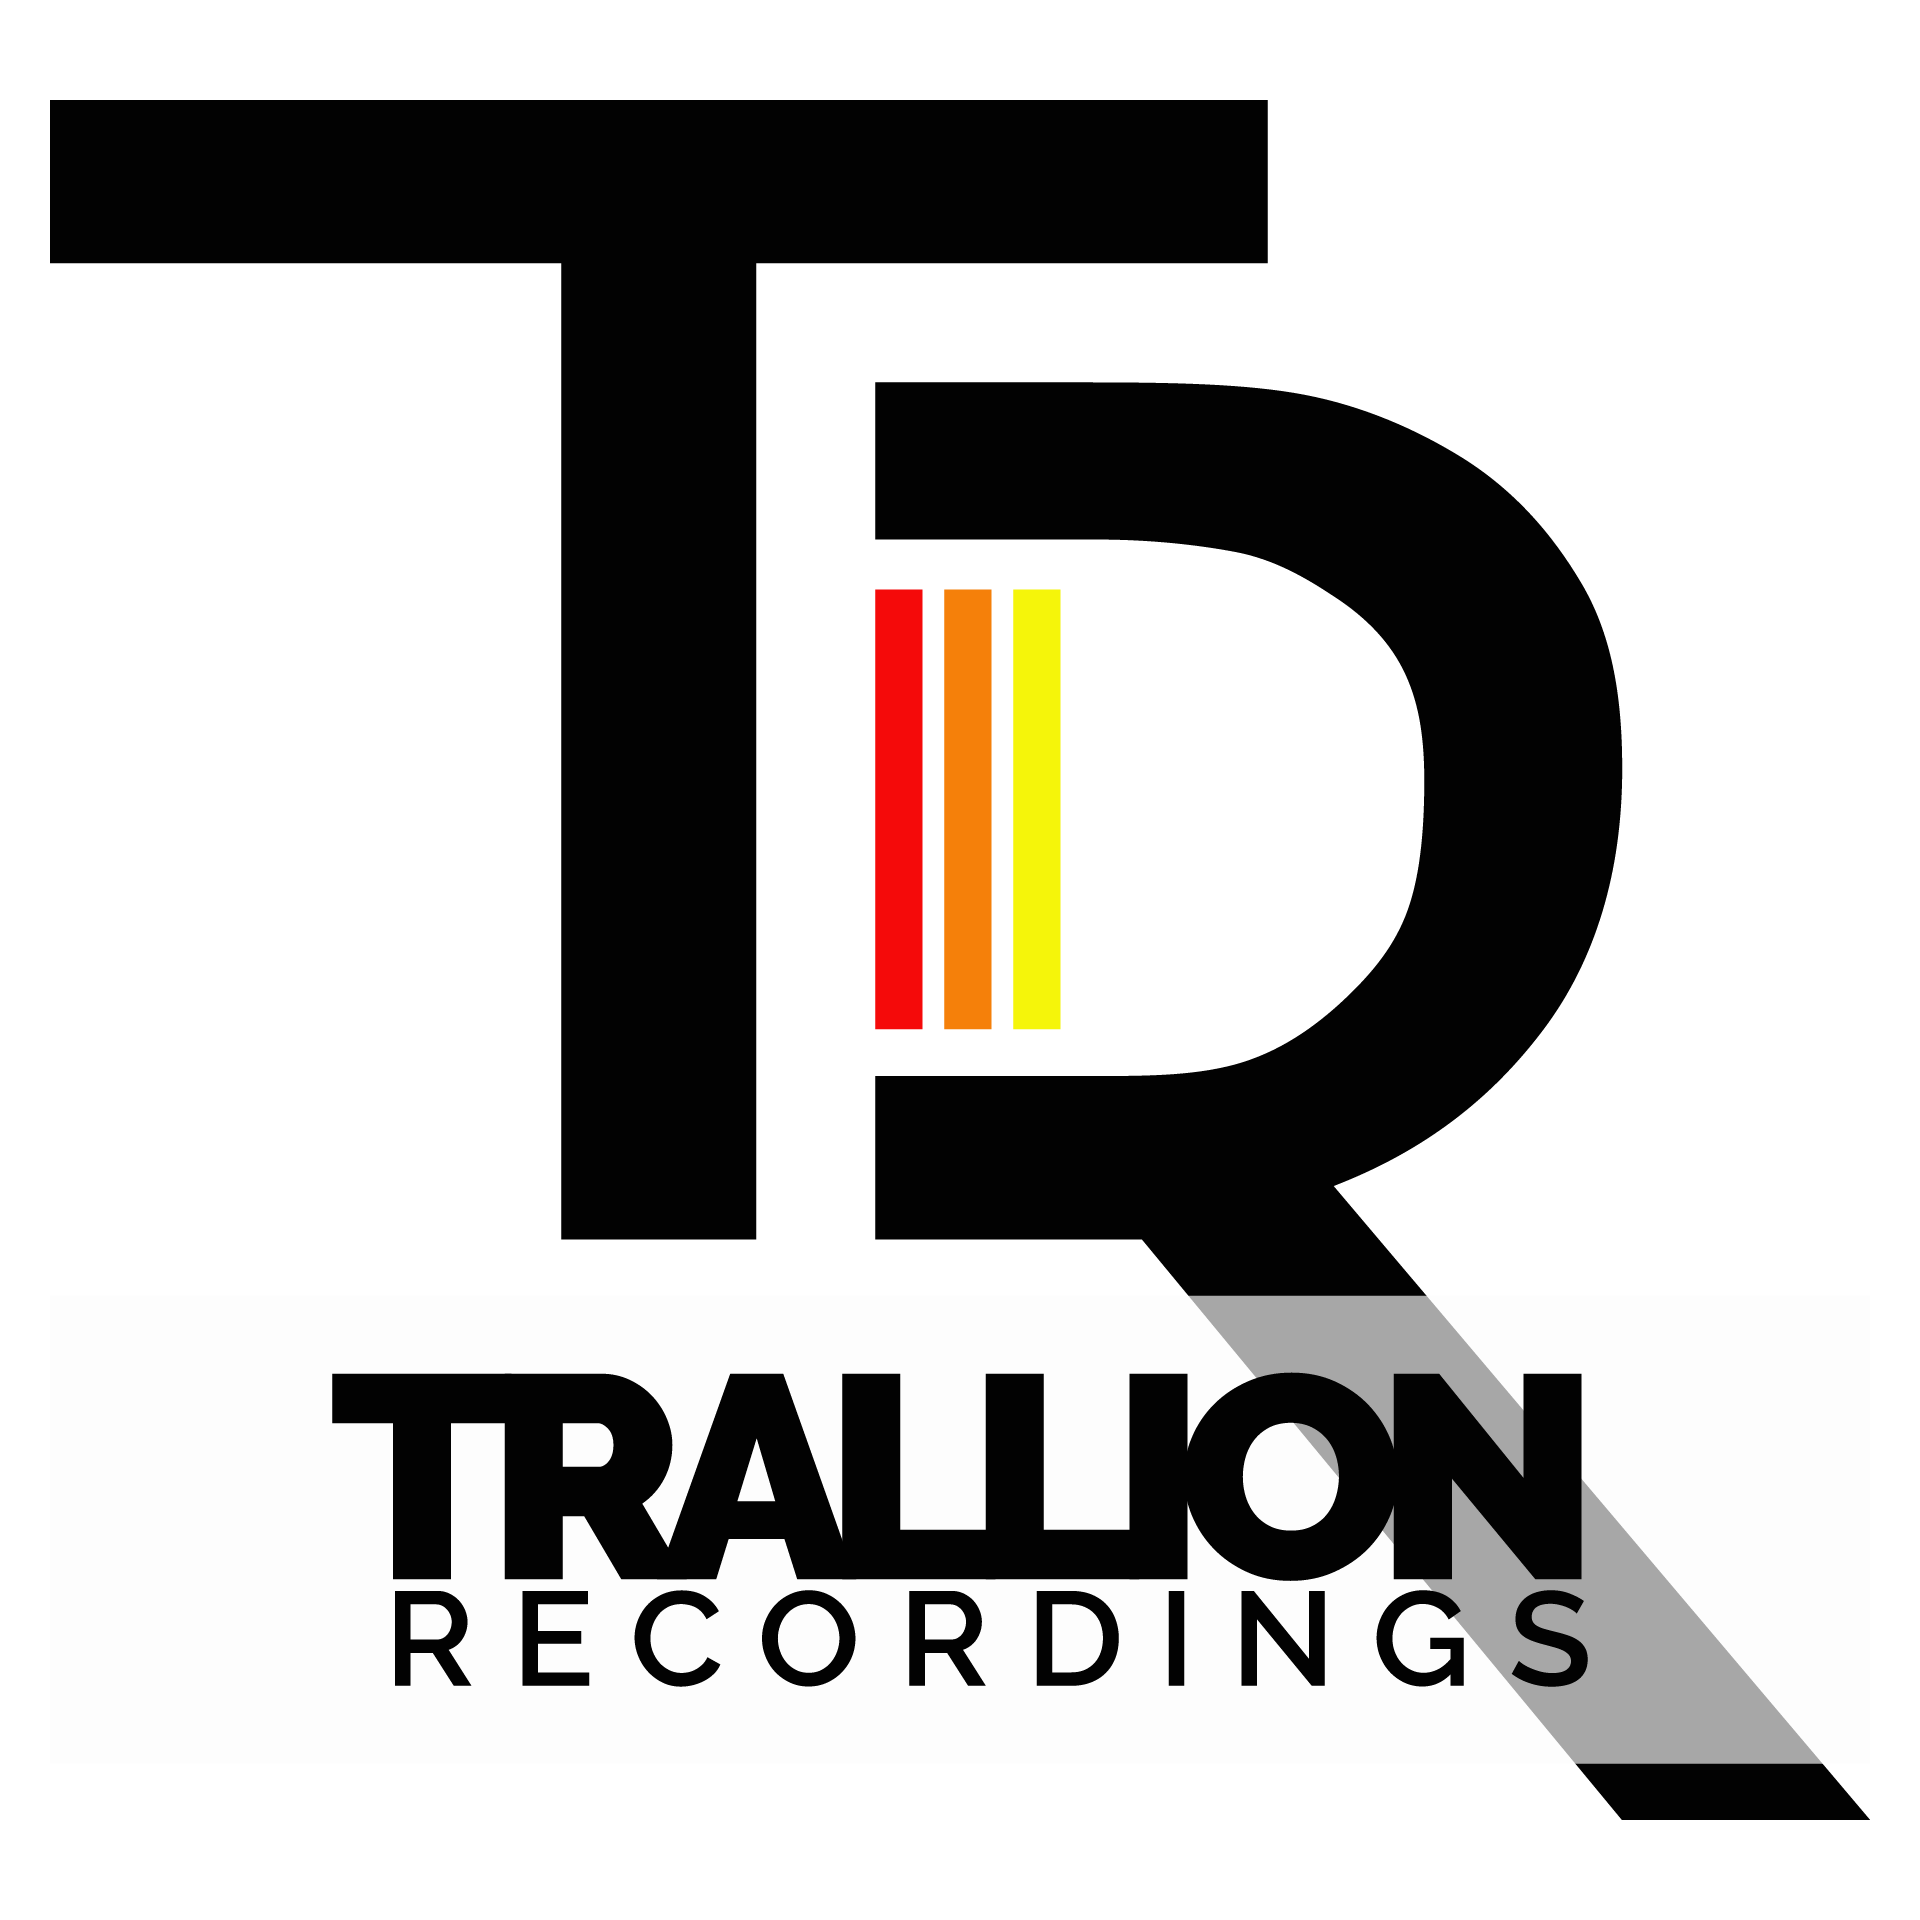 Trallion Recordings